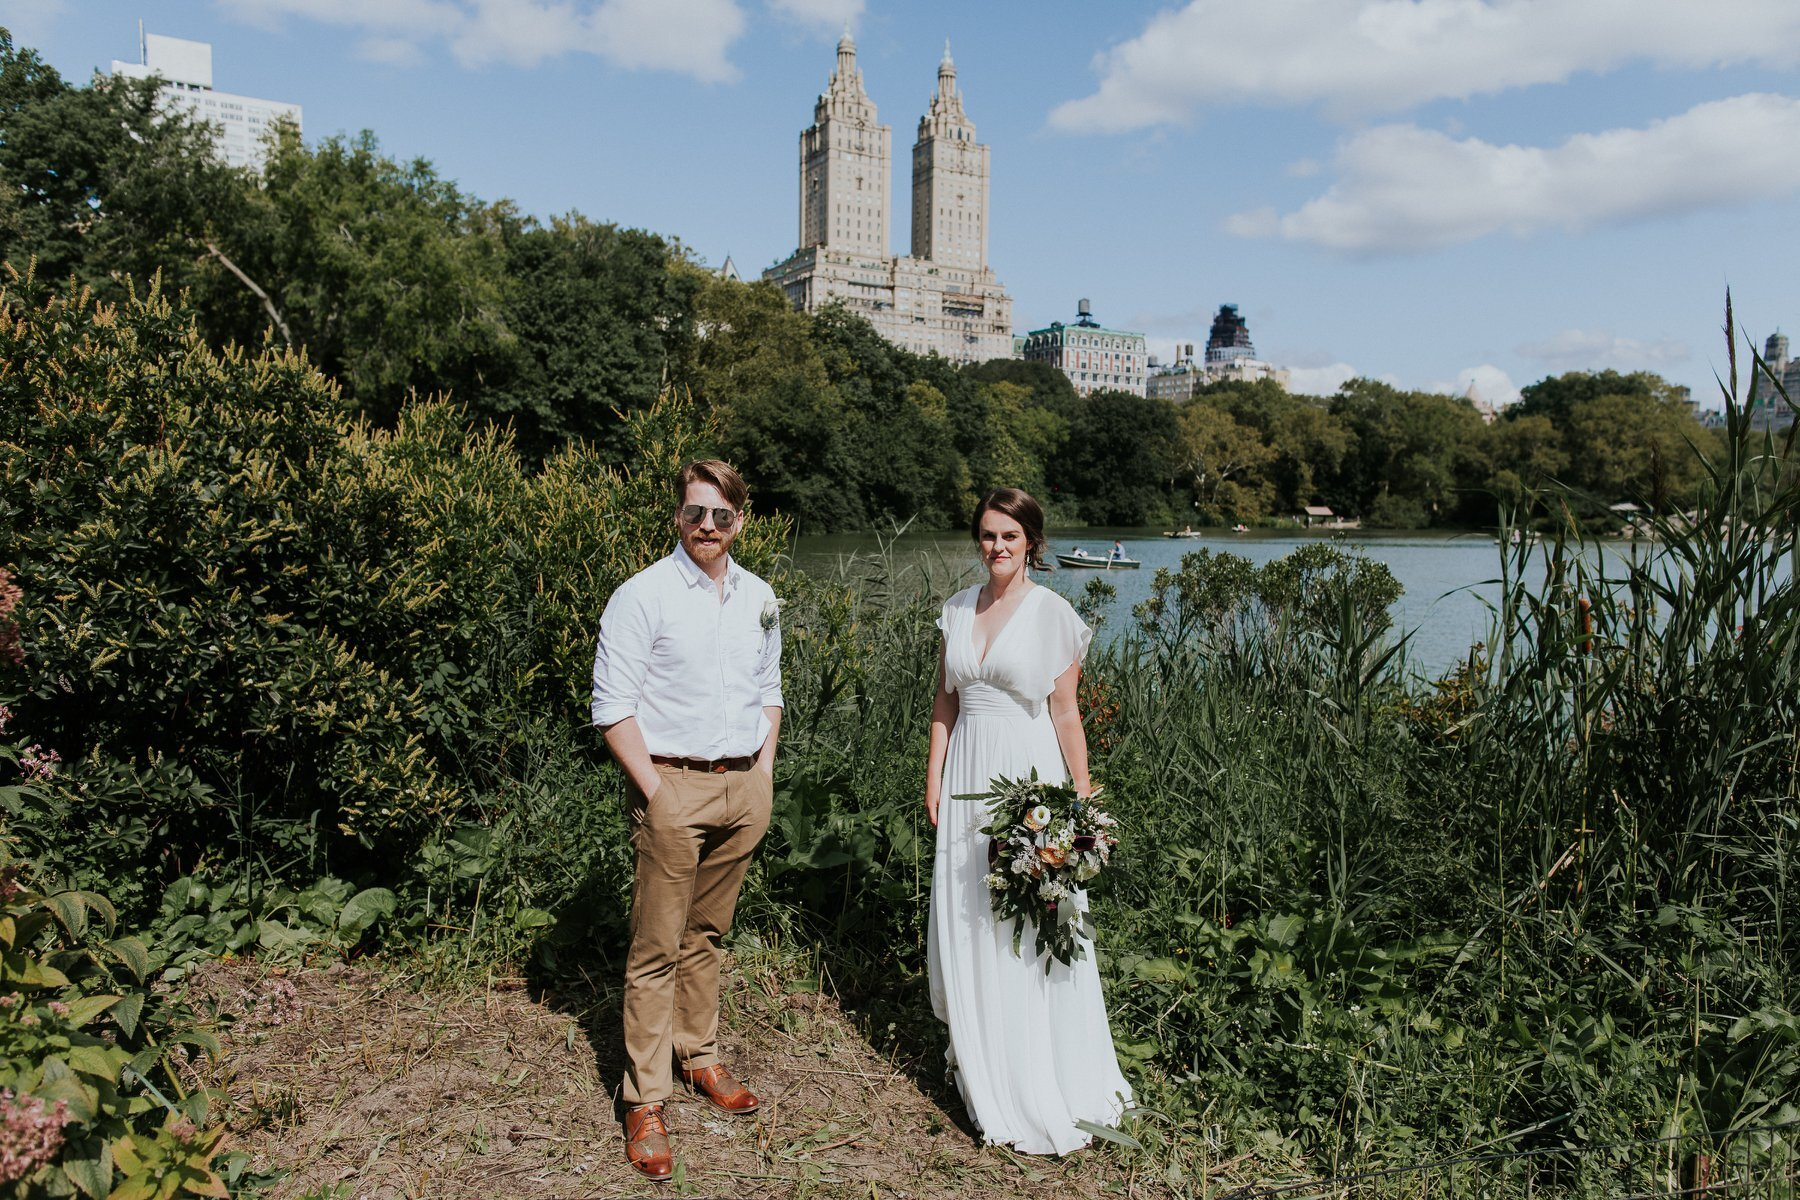 Married in New York Central Park